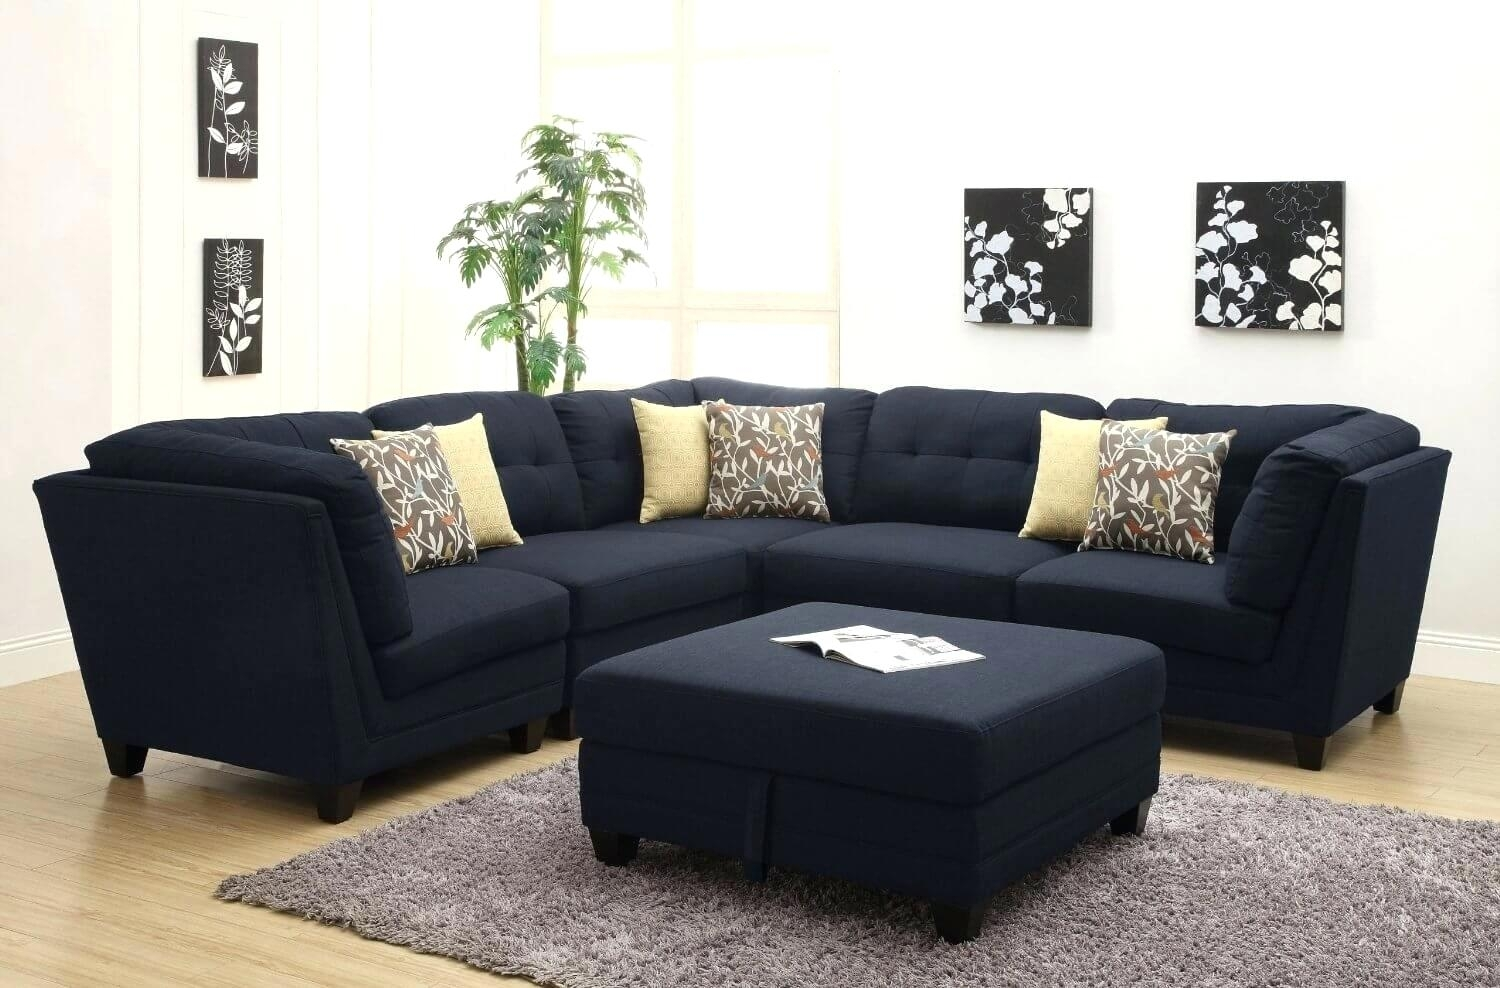 Grey Sectional Couch S Costco Nebraska Furniture Mart Leather Living In Nebraska Furniture Mart Sectional Sofas (View 5 of 10)